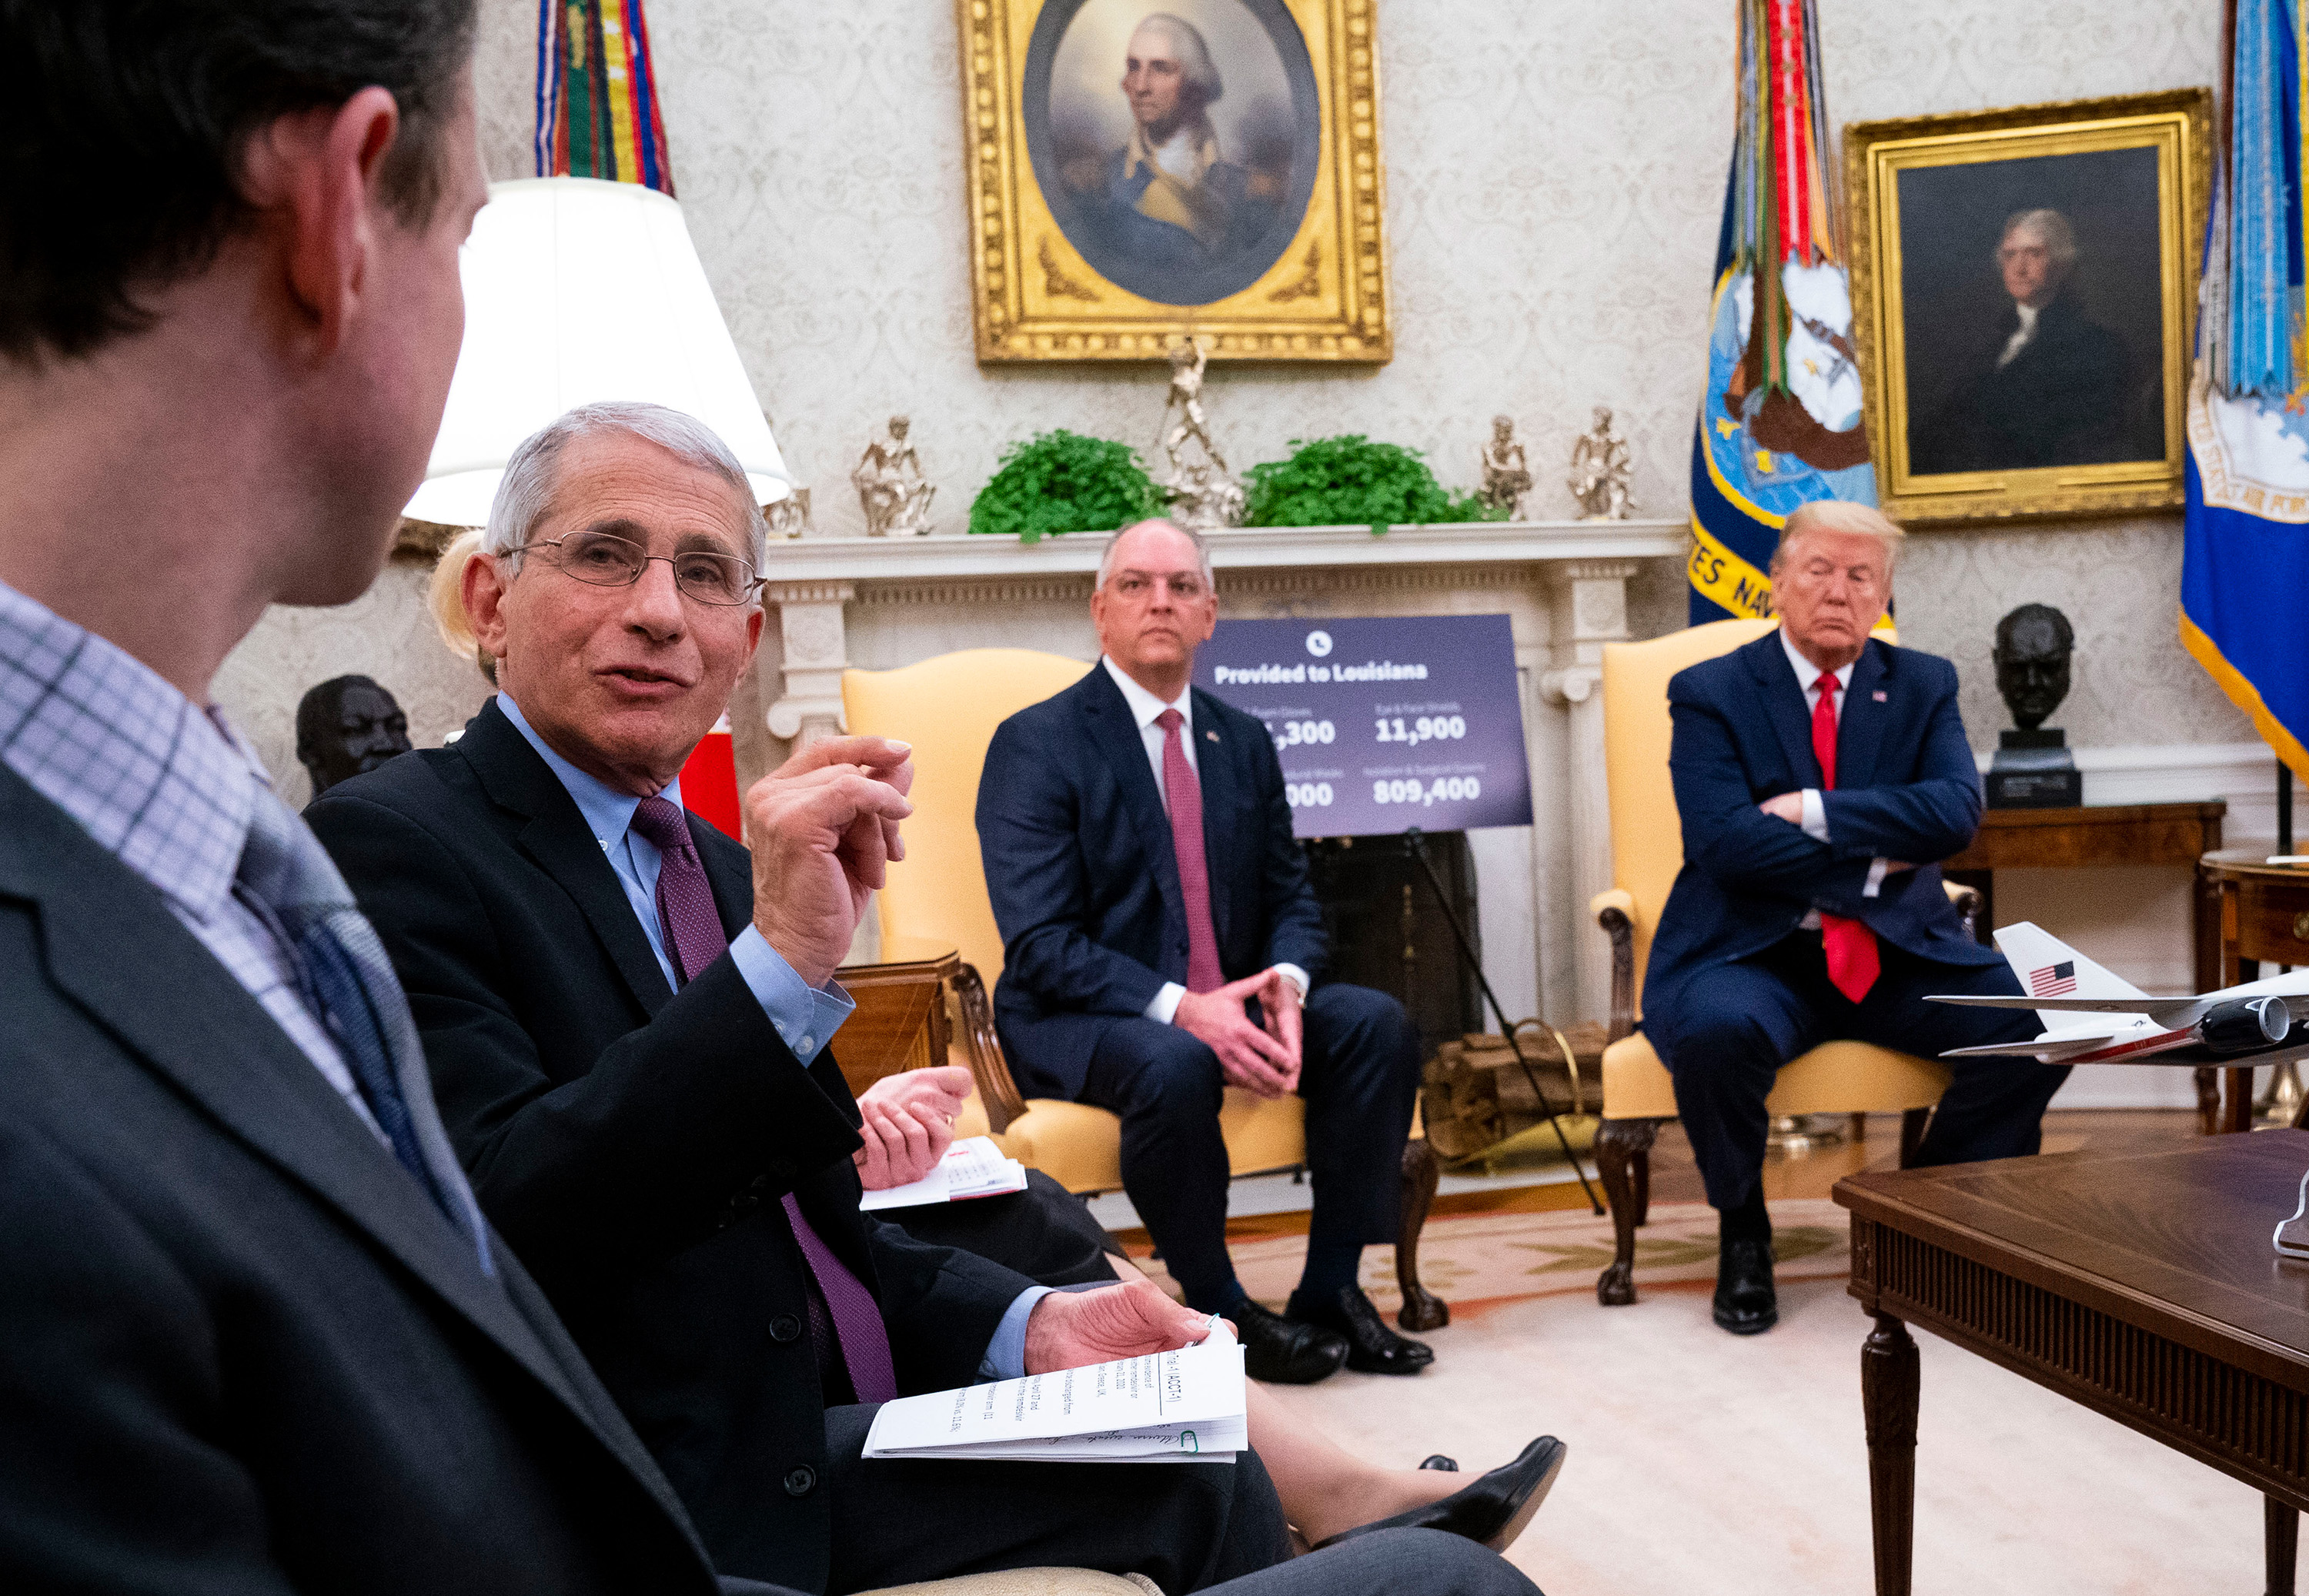 Anthony Fauci discusses promising results from tests of the drug remdesivir during a meeting with President Donald Trump and Louisiana Gov. John Bel Edwards at the White House.